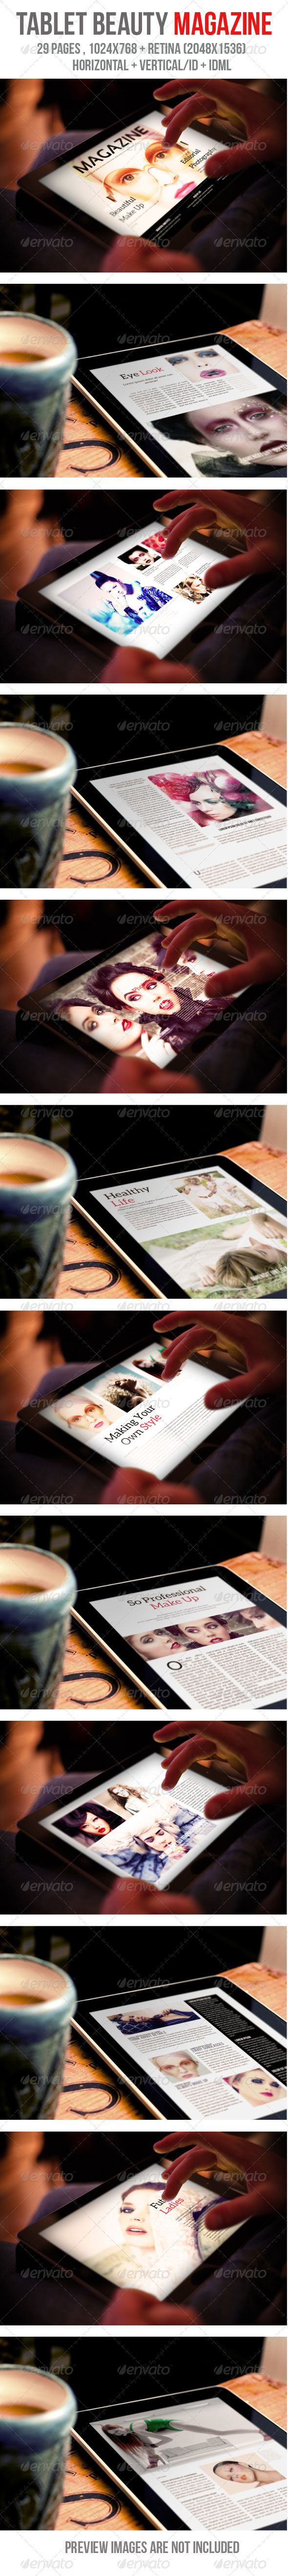 iPad & Tablet Beauty Magazine - Digital Magazines ePublishing